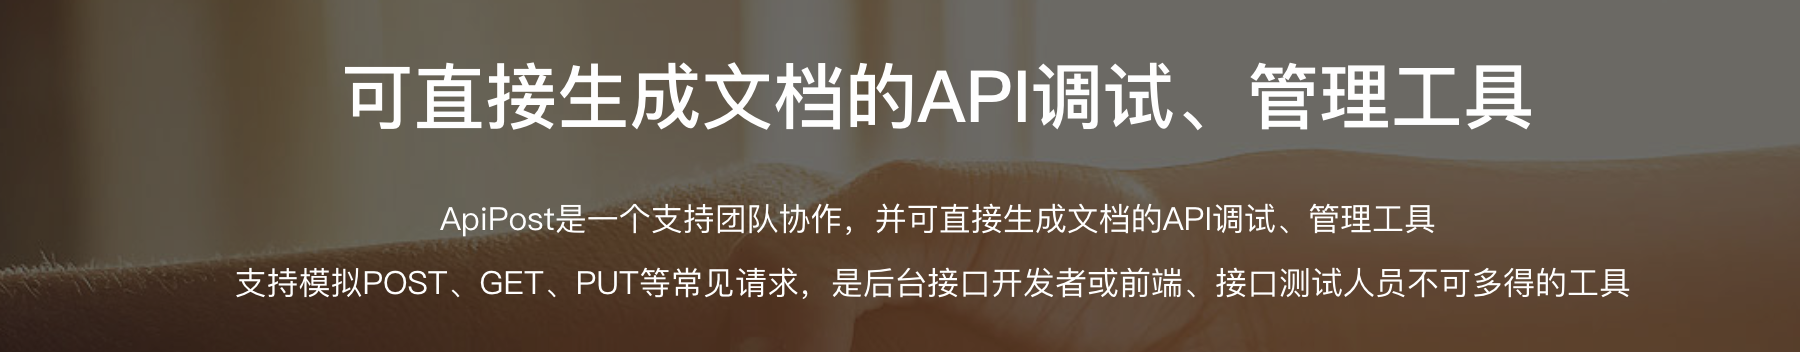 ApiPost使用文档